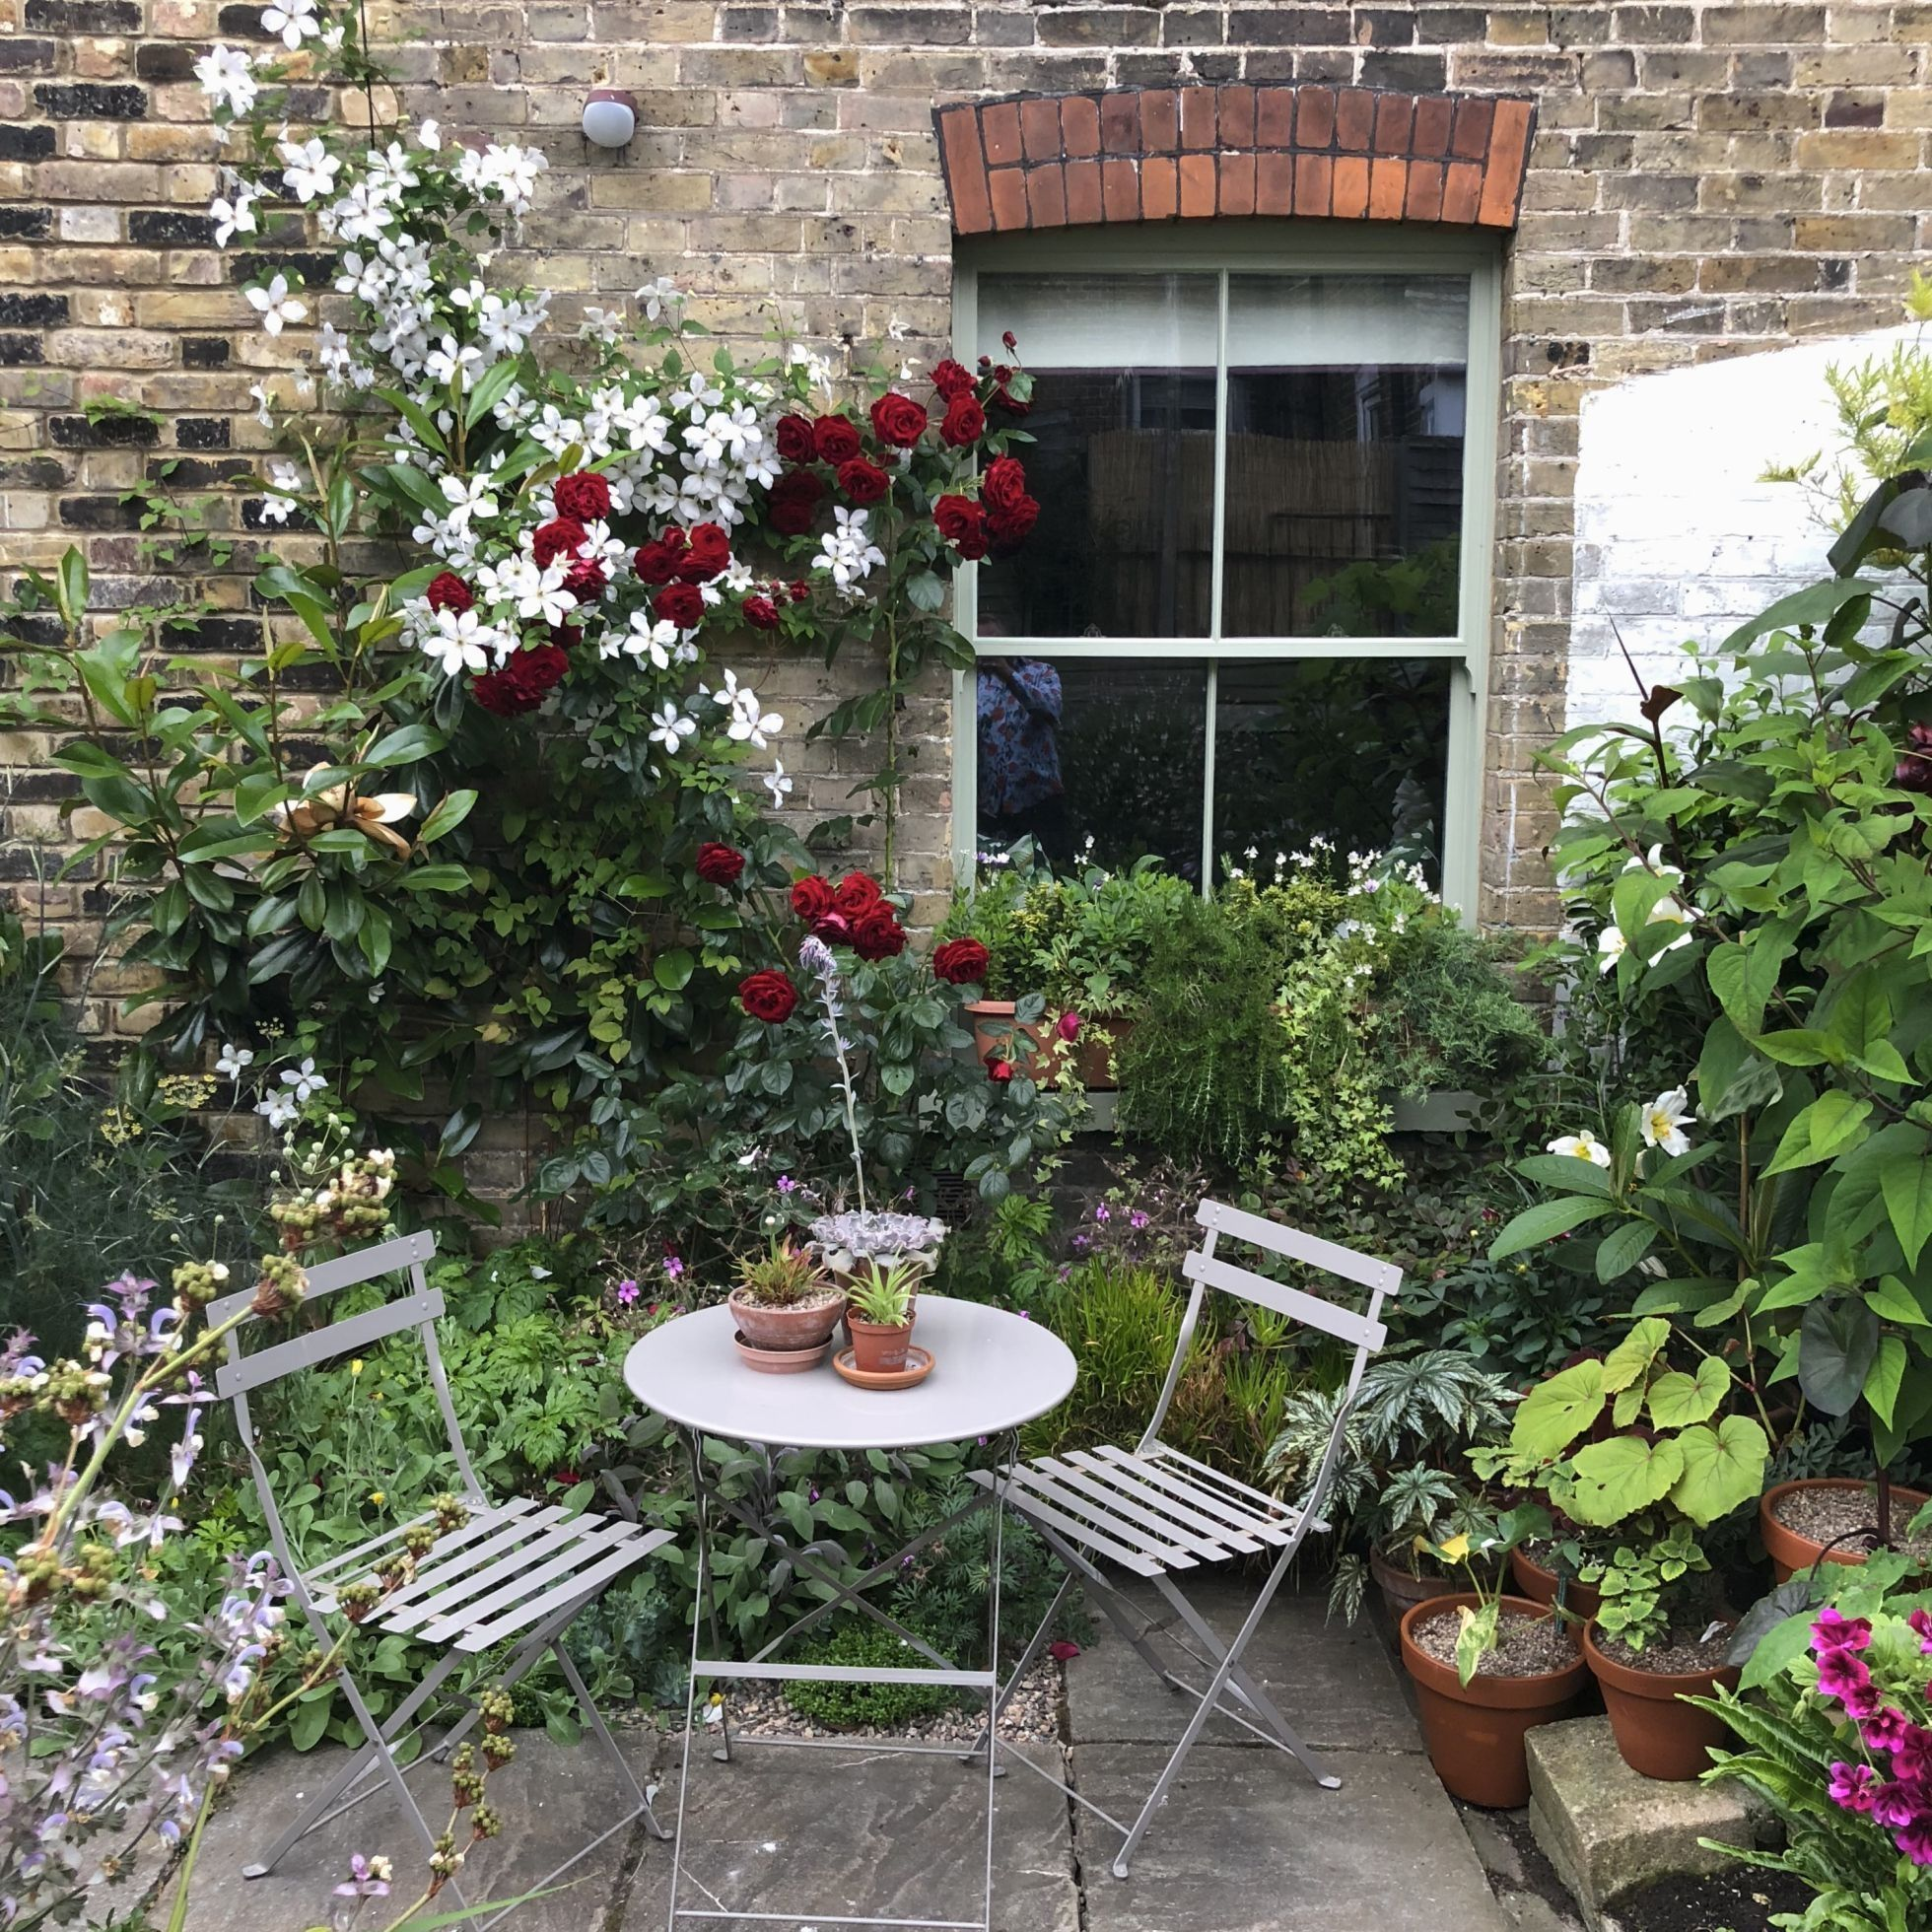 Garden Ideas Designs And Inspiration: 37 Cozy And Clean Small Courtyard Ideas For Your